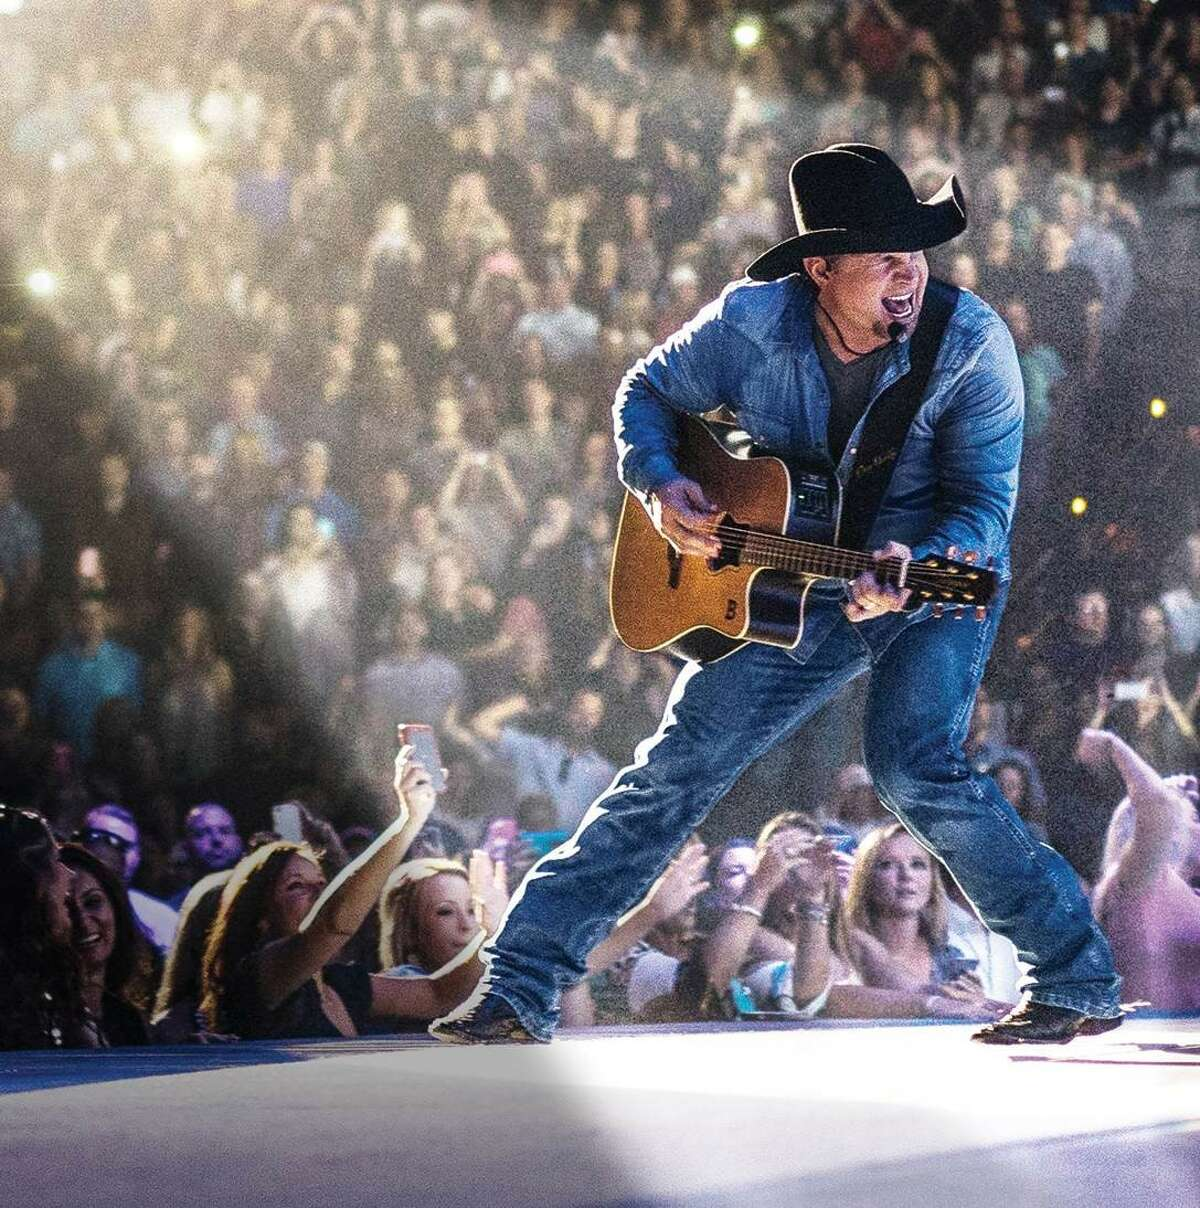 The Houston Livestock Show and Rodeo announced today that Garth Brooks will open and close the 2018 Rodeo.